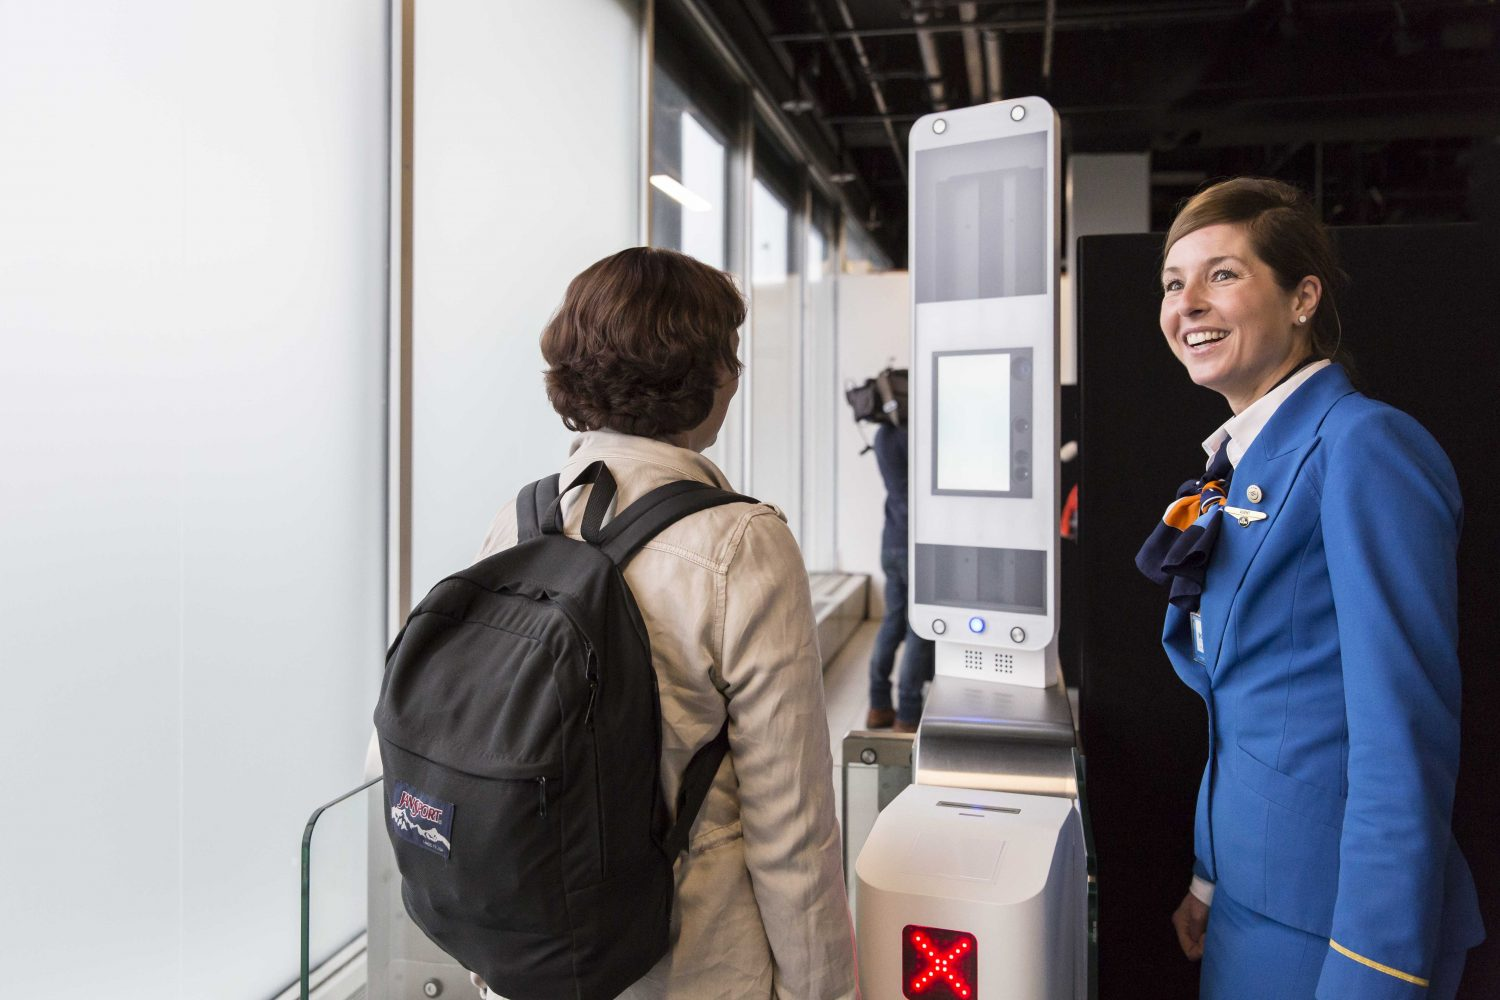 Facial recognition technology at the airport